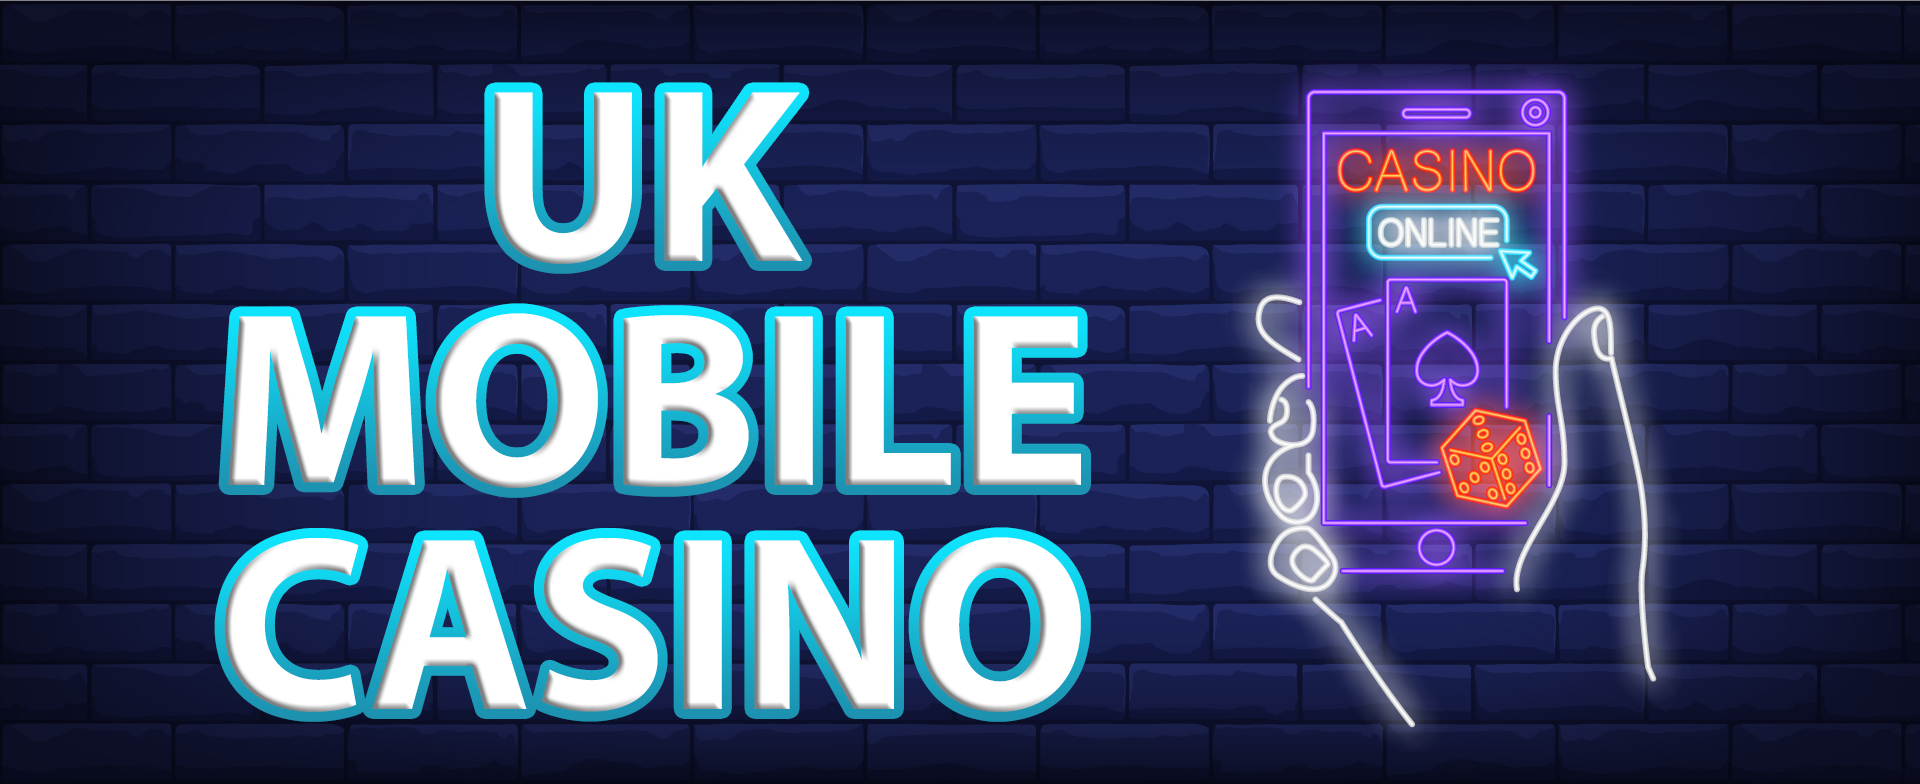 UK Mobile Casino Quick Start Tips